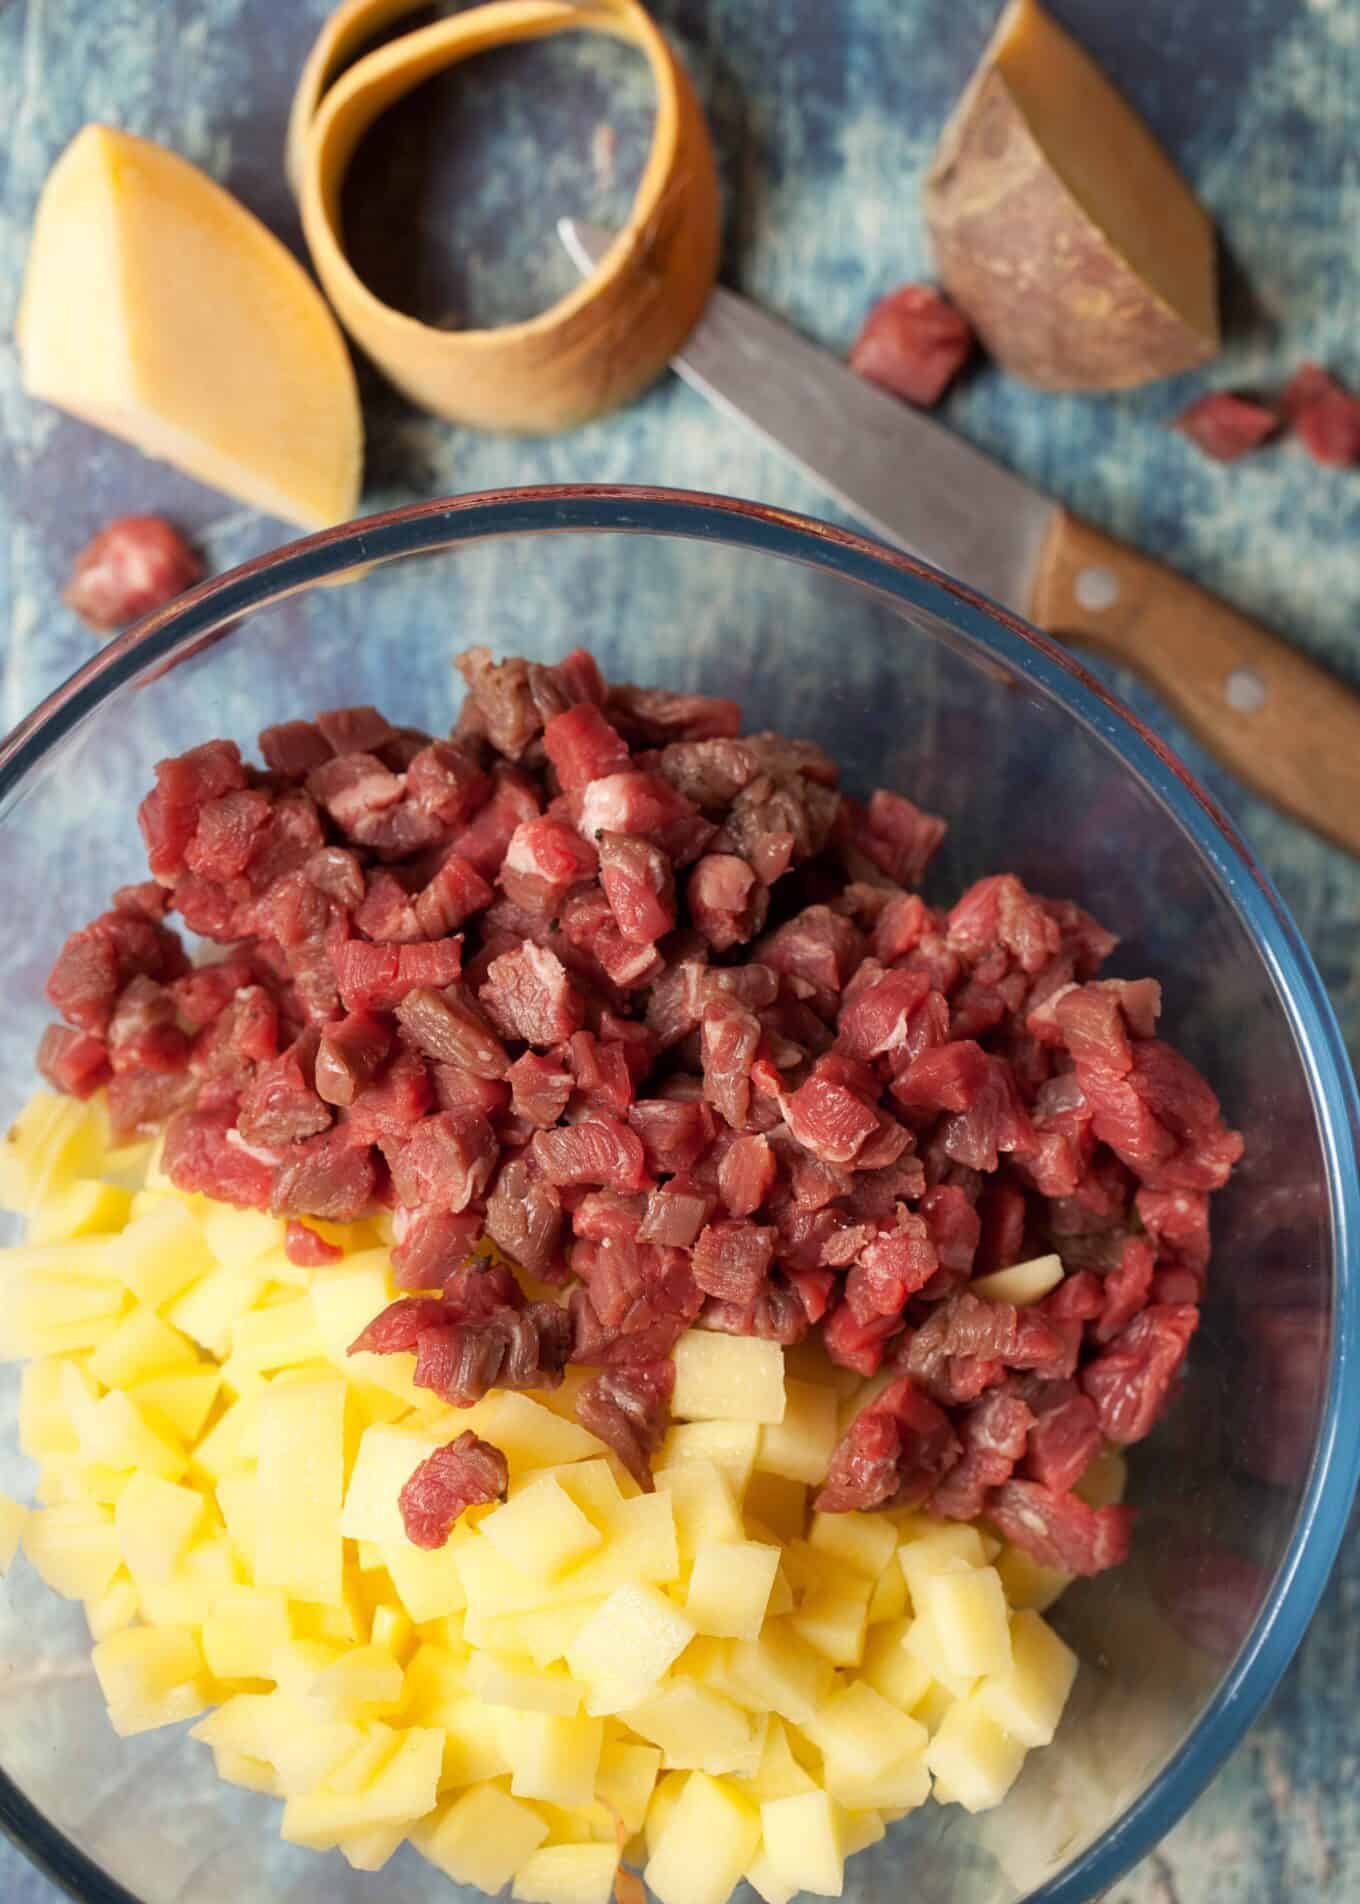 sliced potato and diced beef skirt in a bowl